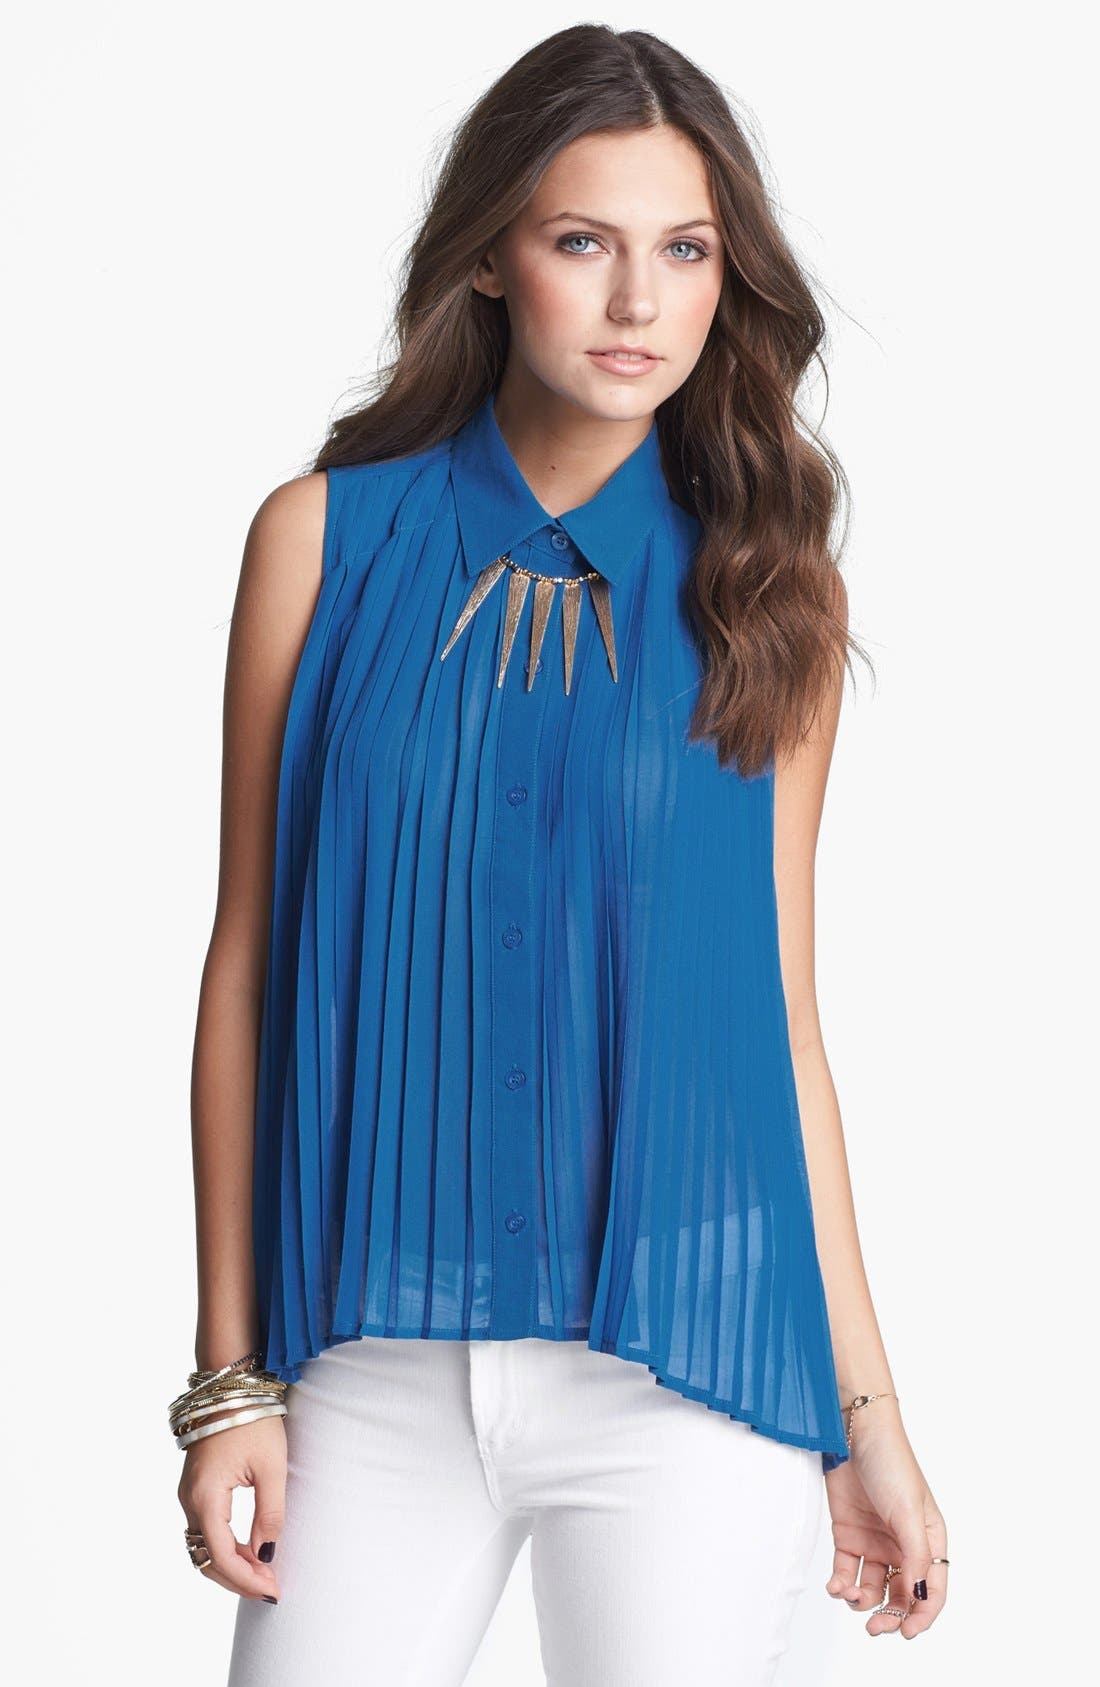 Alternate Image 1 Selected - Lovposh Pleated High/Low Shirt (Juniors) (Online Exclusive)